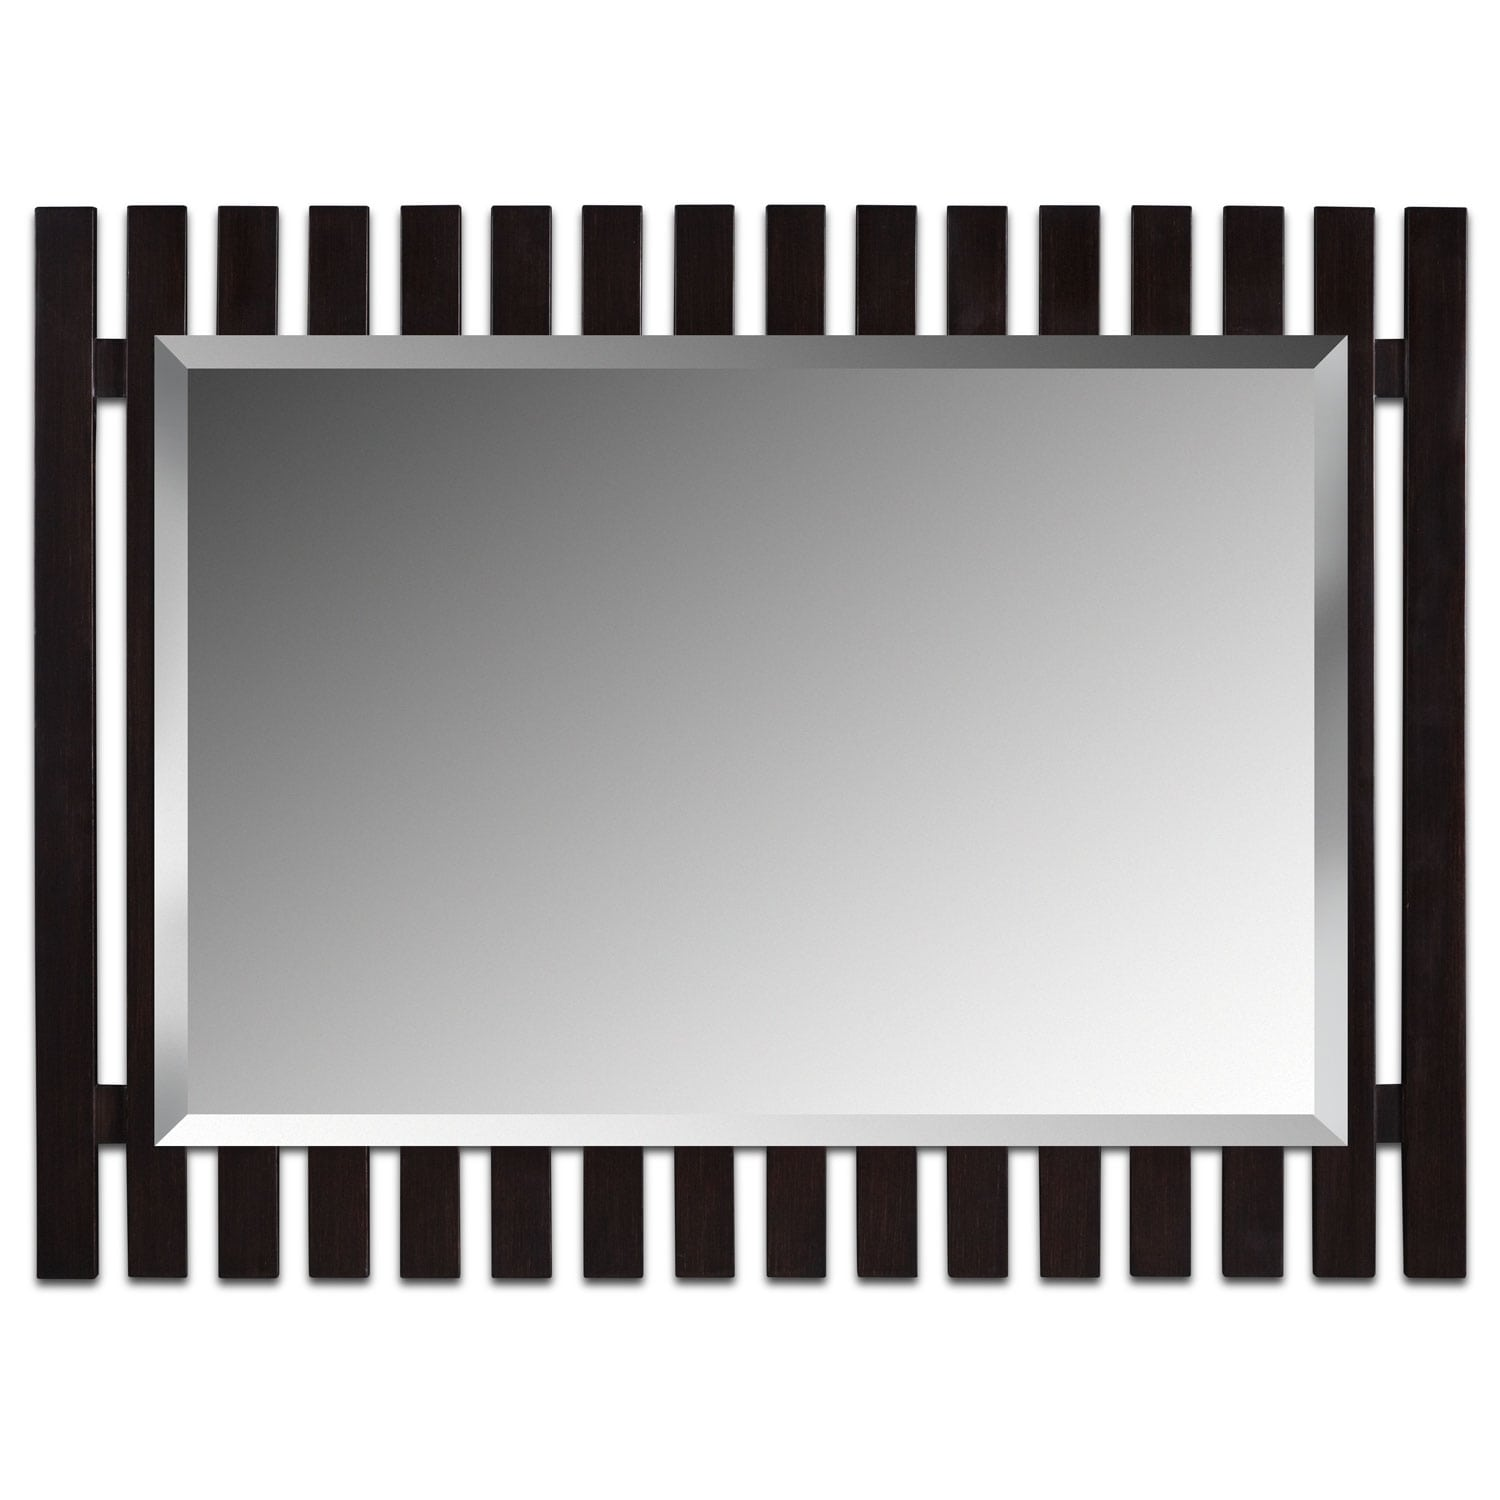 Home Accessories - Brown Fence Mirror